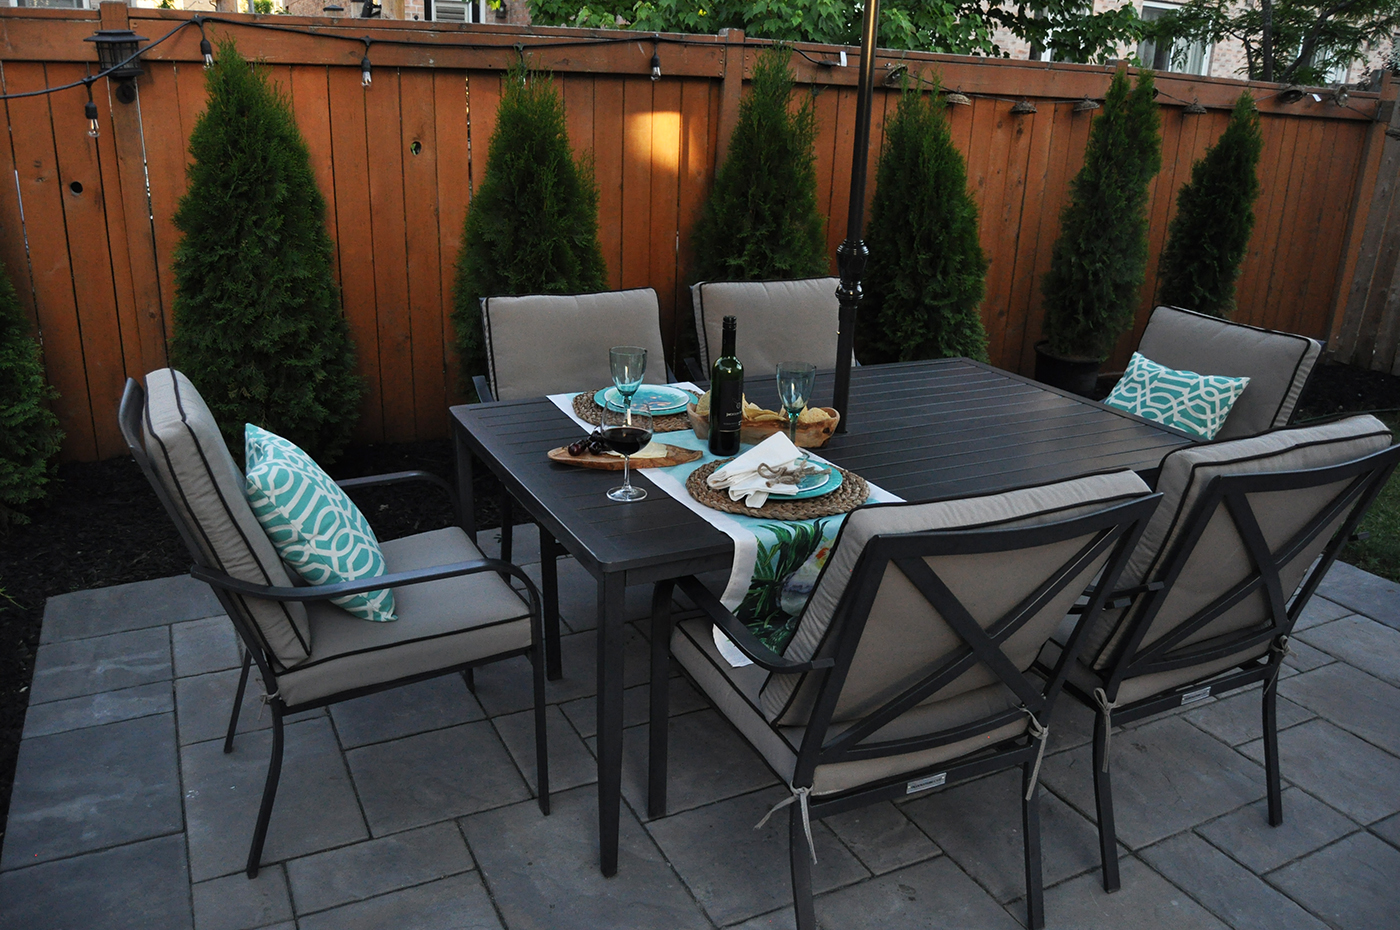 New Unilock patio with table and chairs.